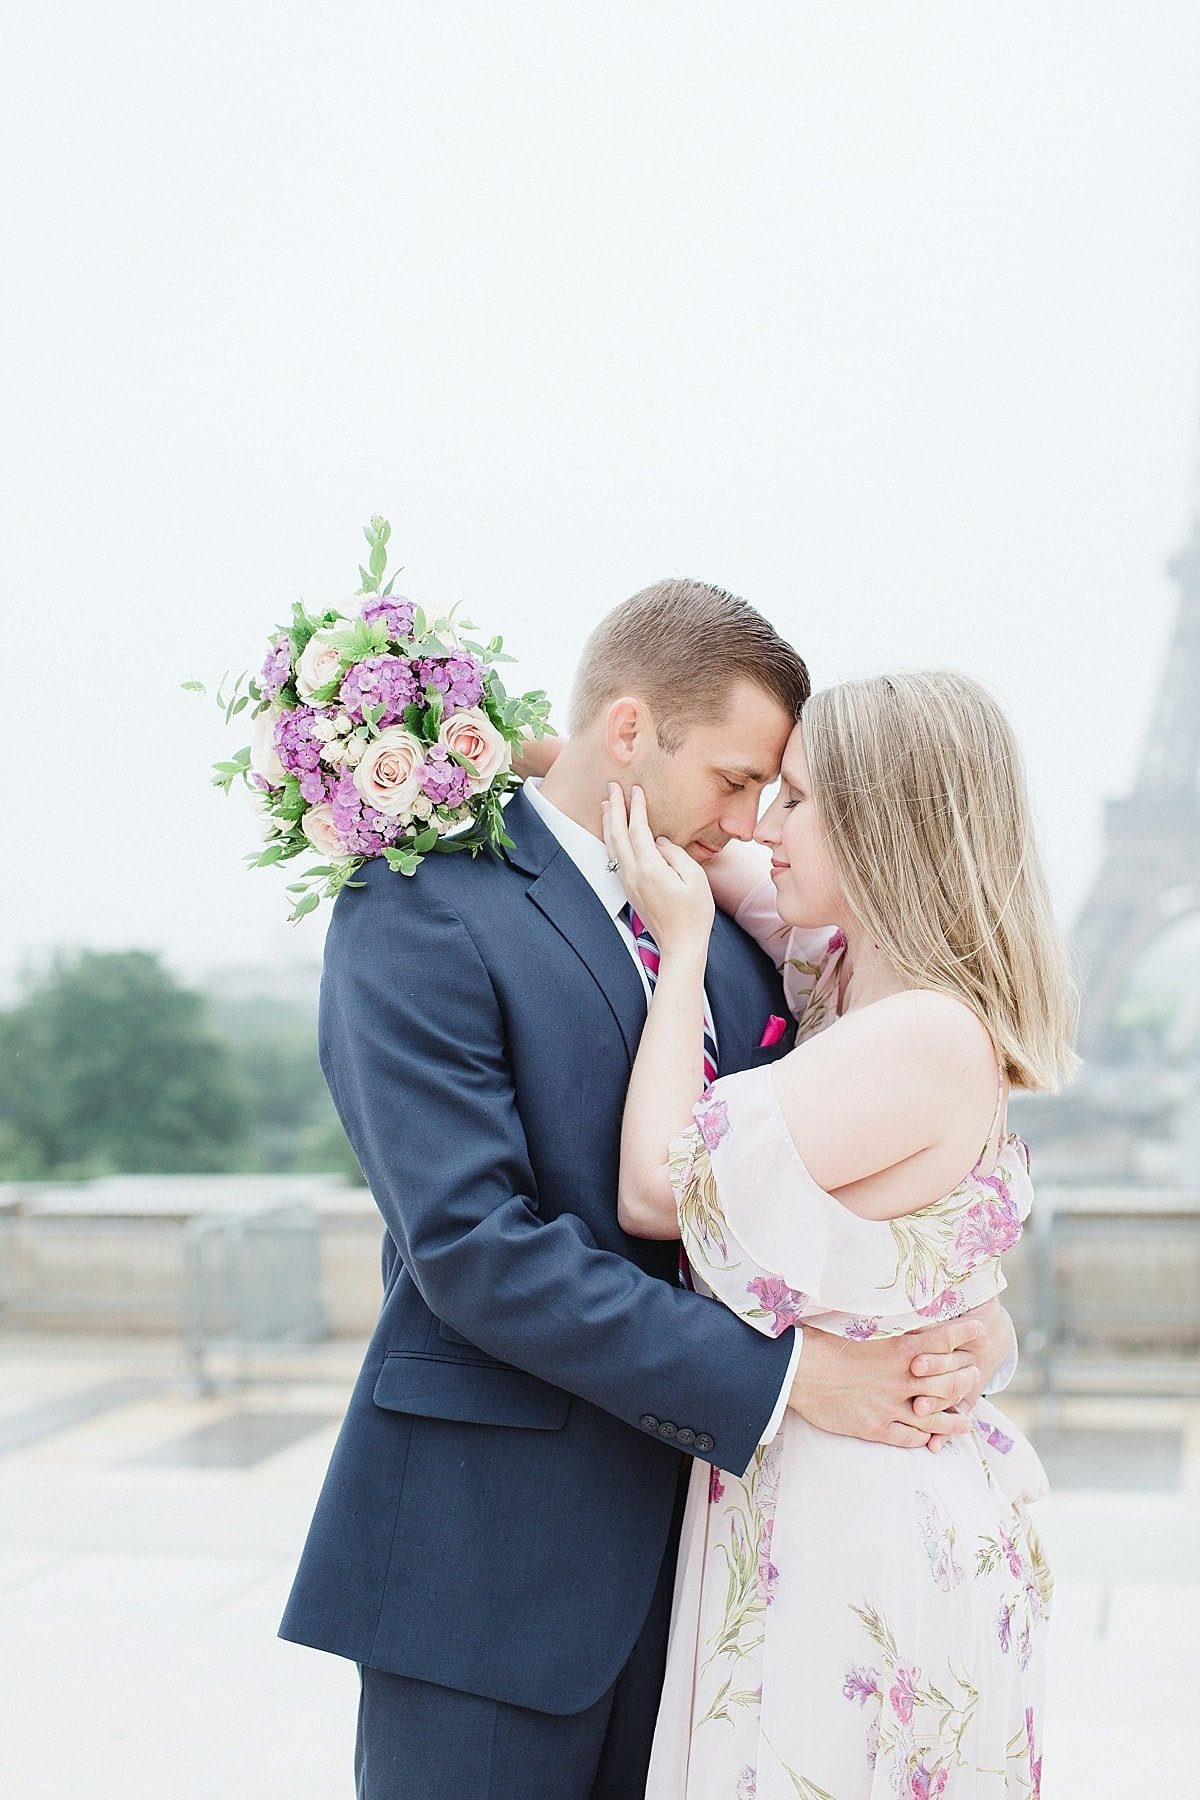 paris-photo-session-anniversary-alicia-yarrish-photography_09